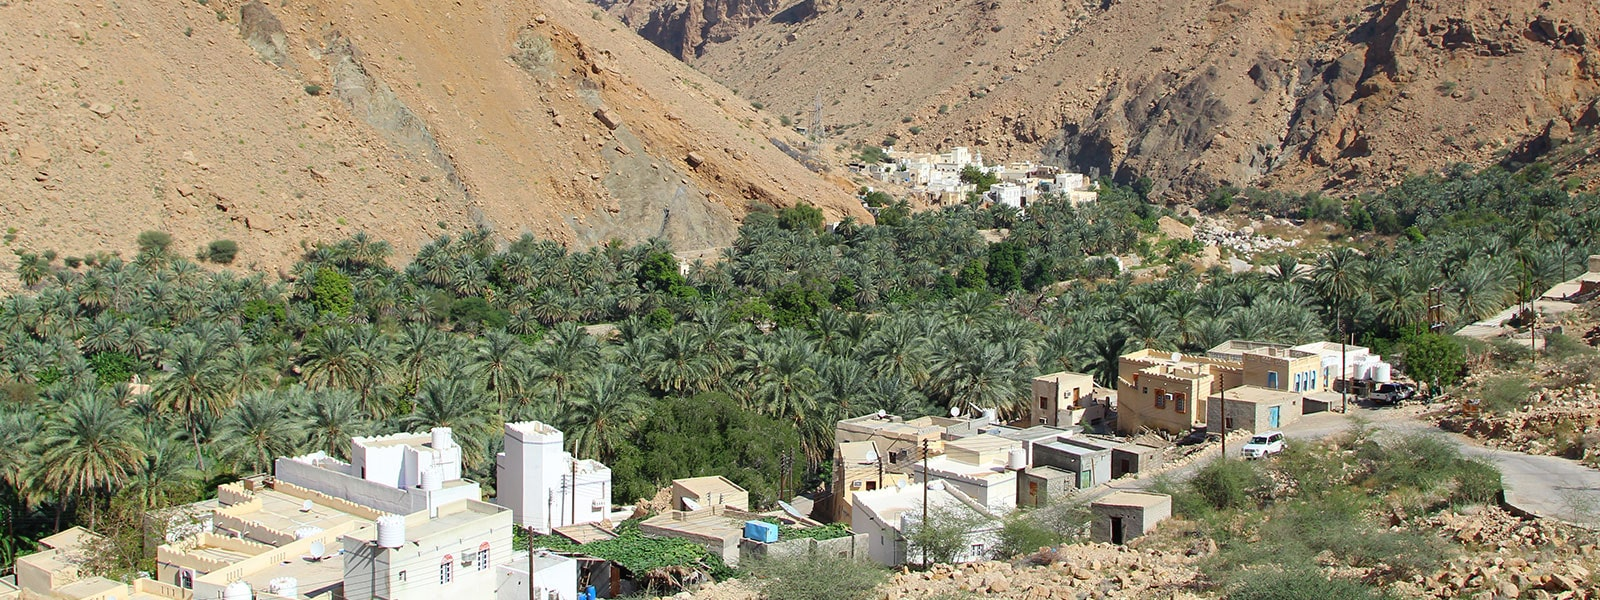 A village at Ash Sharqiyah Wadi Tiwi